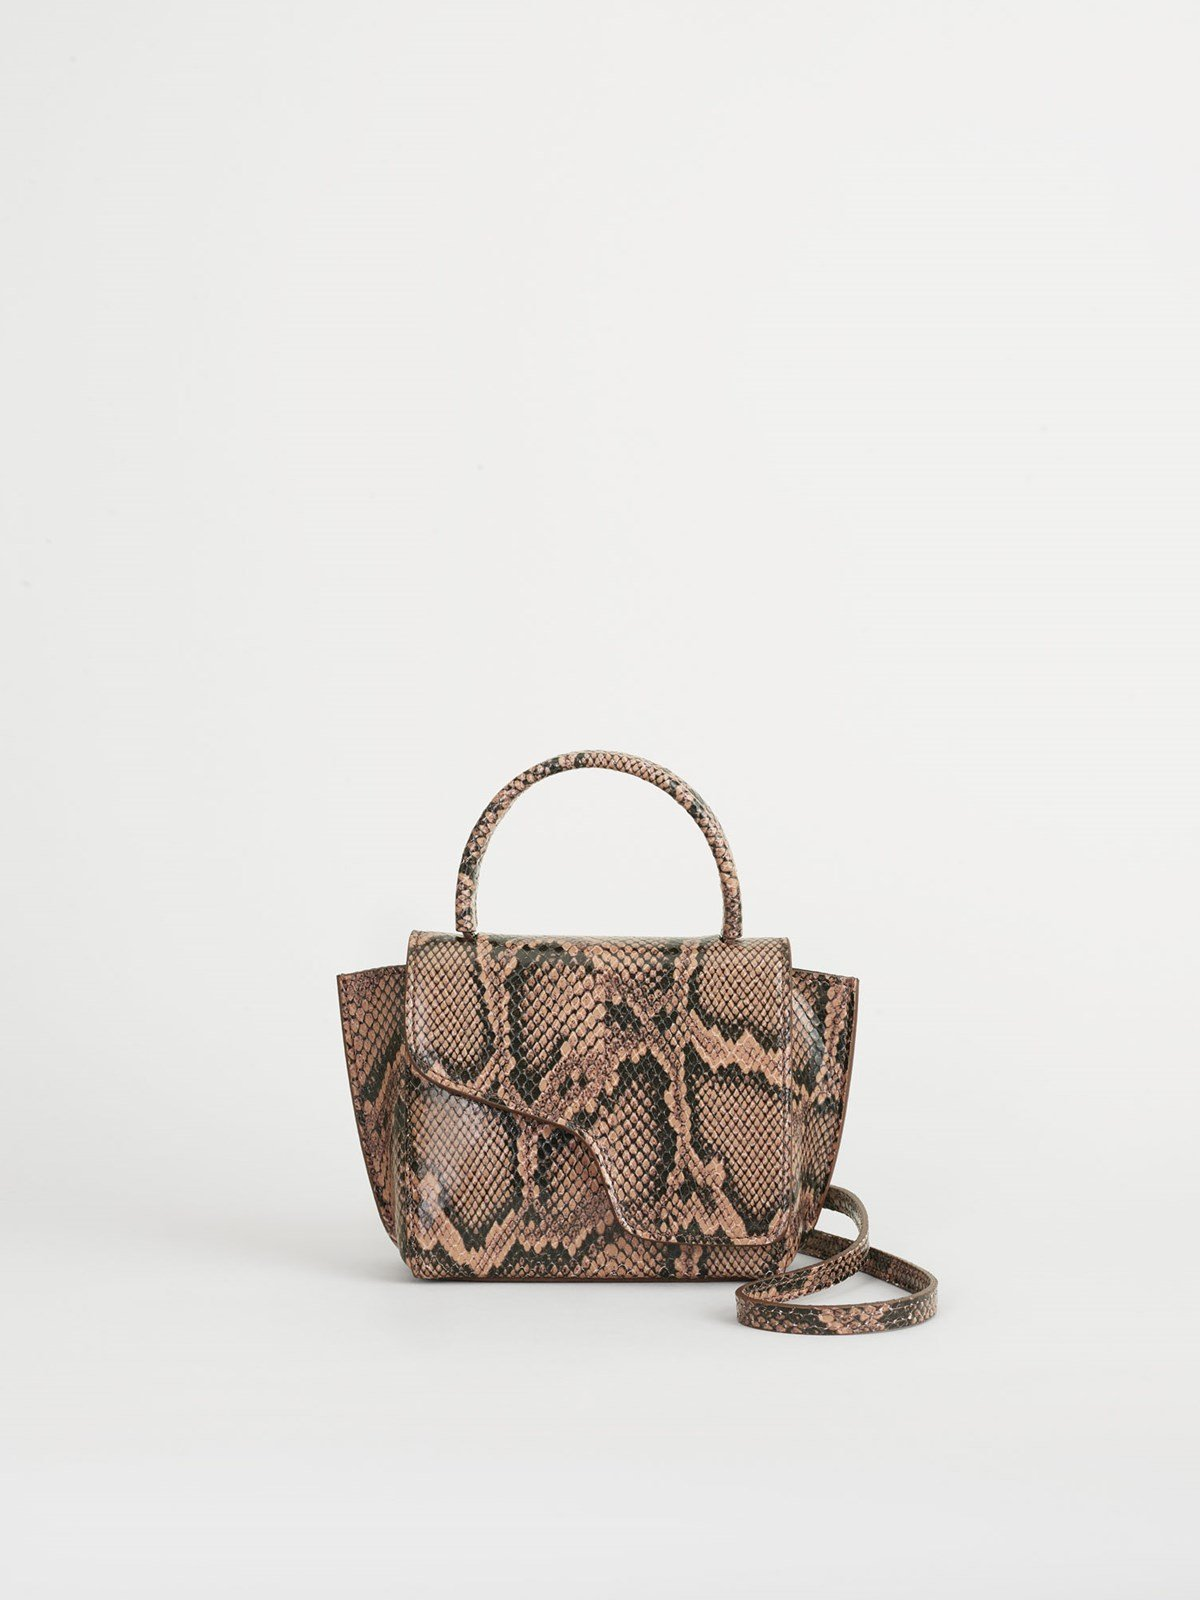 Montalcino Brown Mini handbag